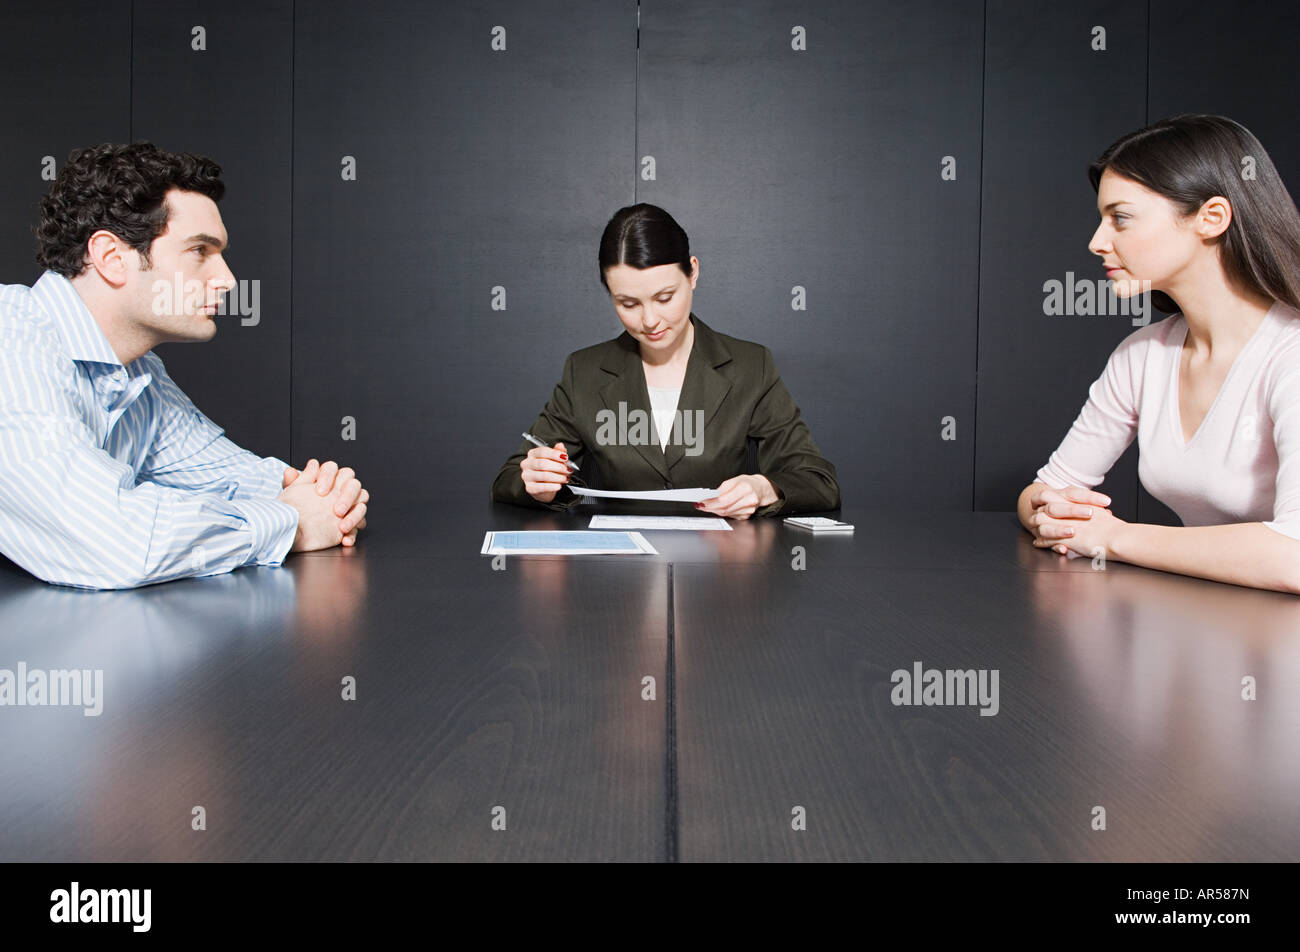 Couple divorcing - Stock Image